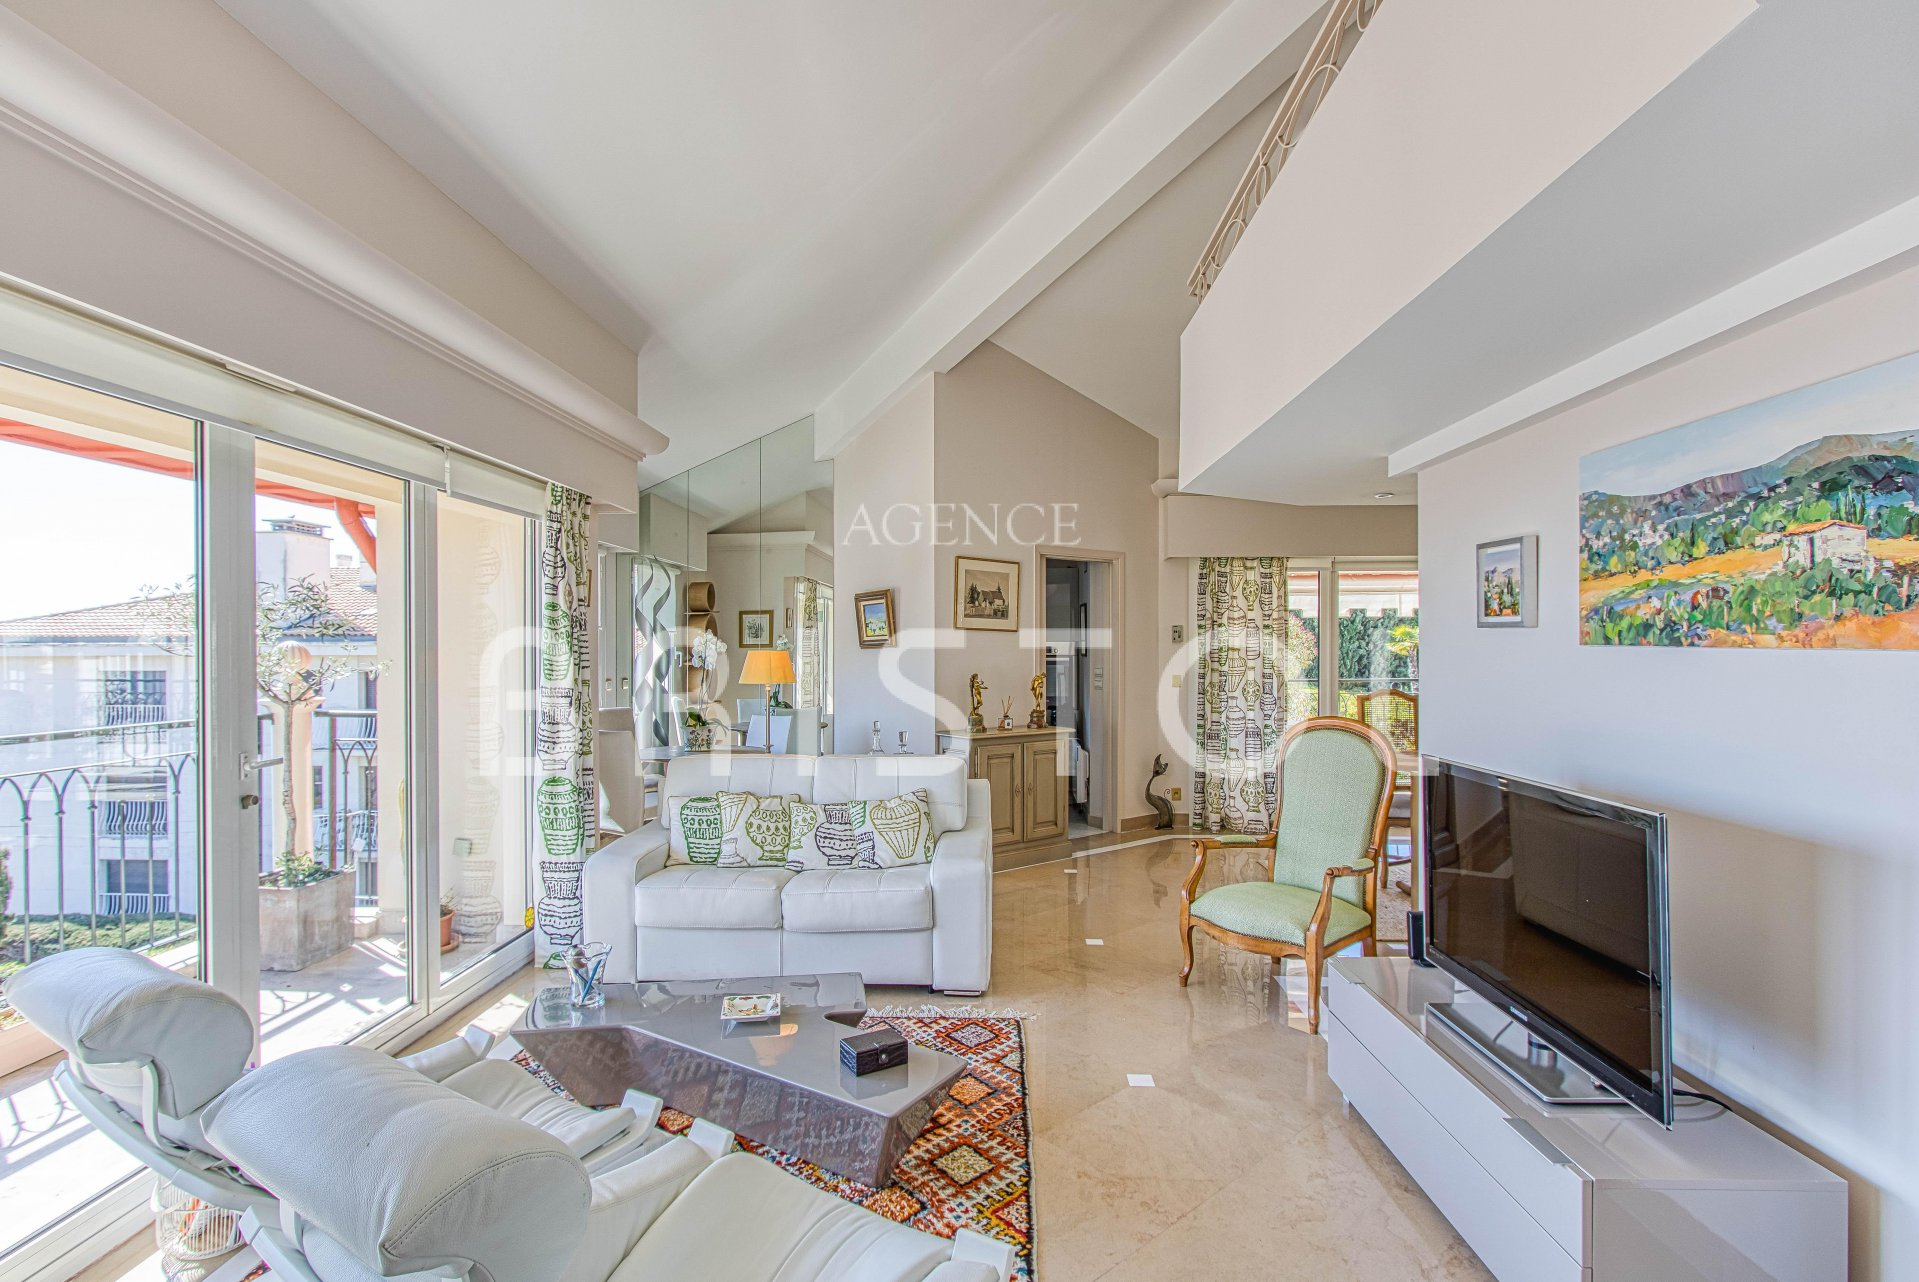 Apartment for sale in Saint Jean cap Ferrat -top floor-sea view